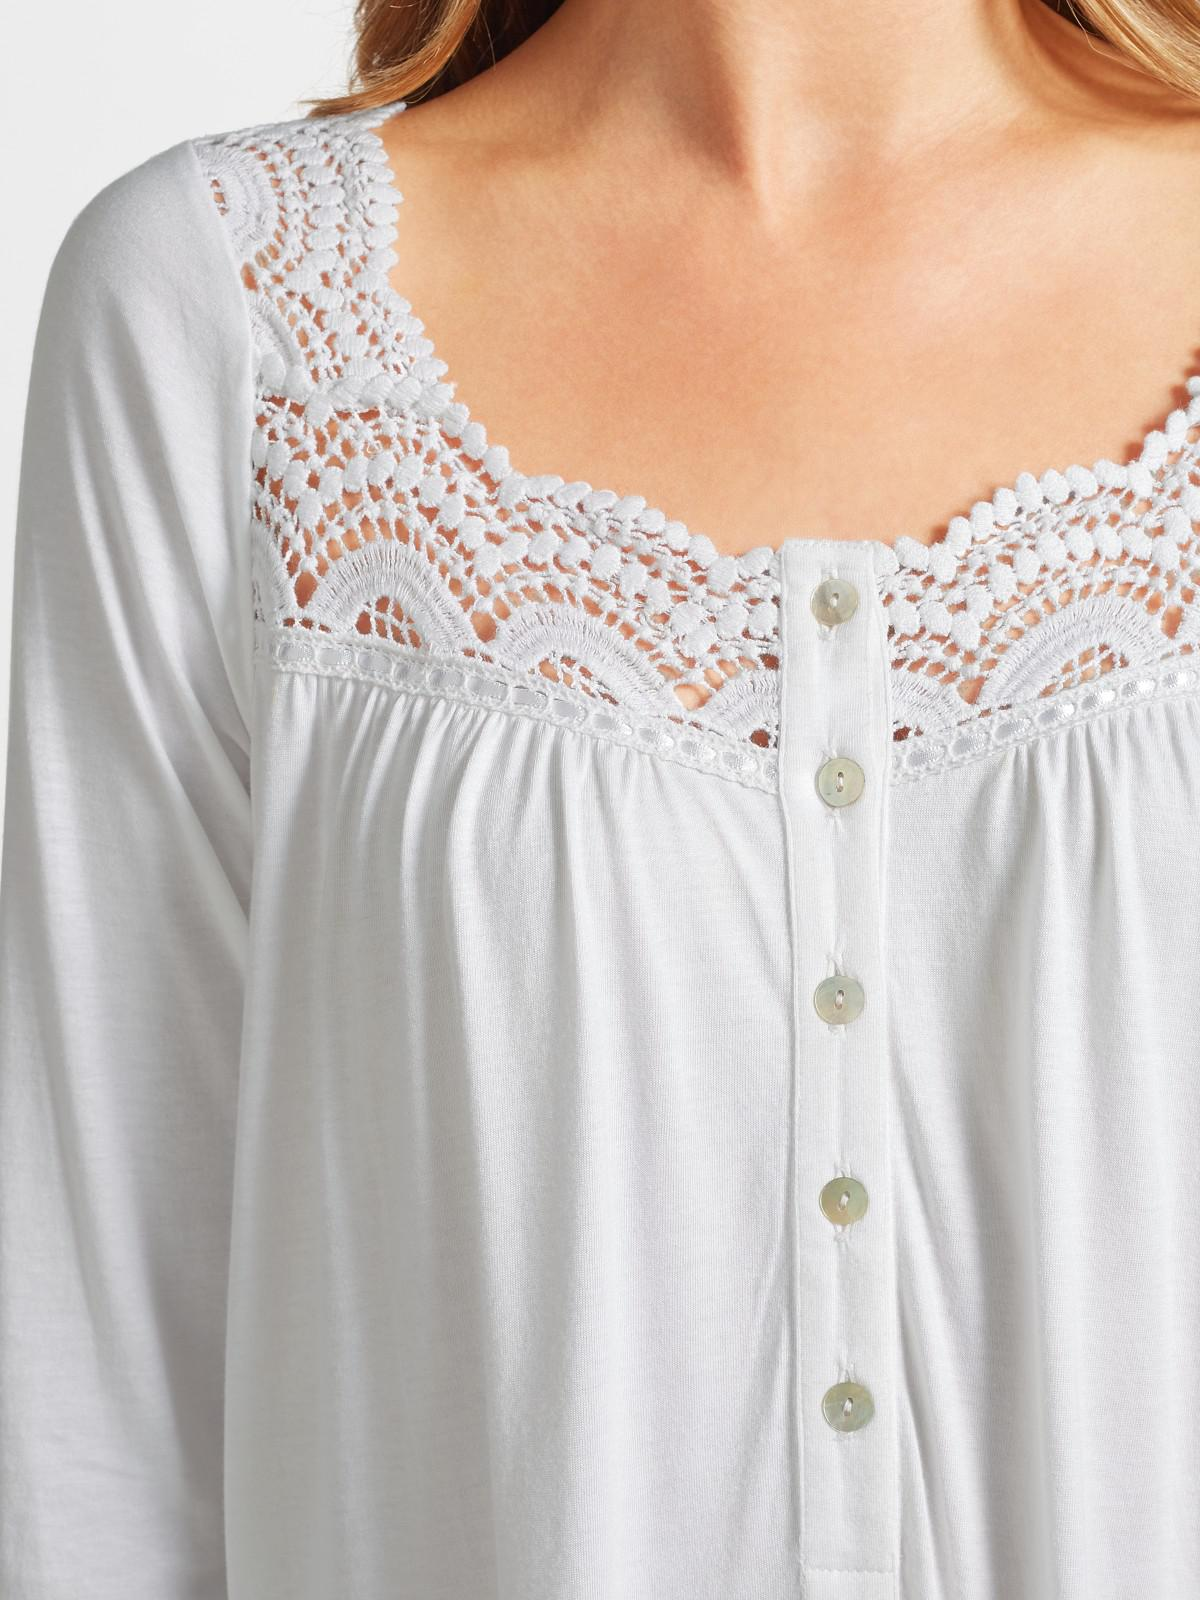 35ca086a51 John Lewis Long Sleeve Lace Trim Jersey Nightdress in White - Lyst